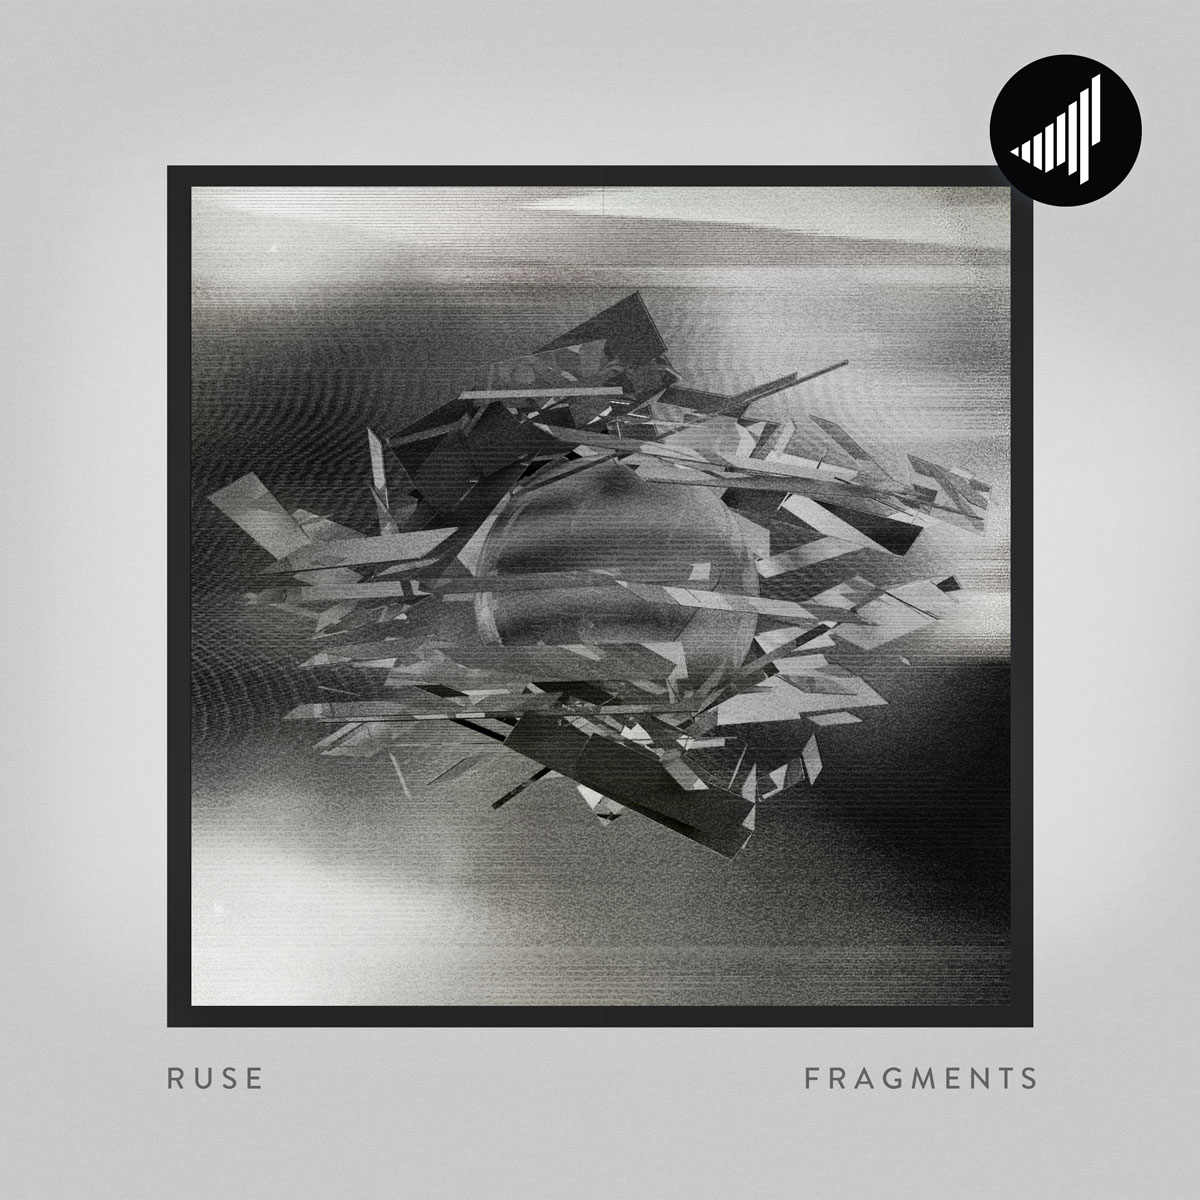 Ruse - FRAGMENTS